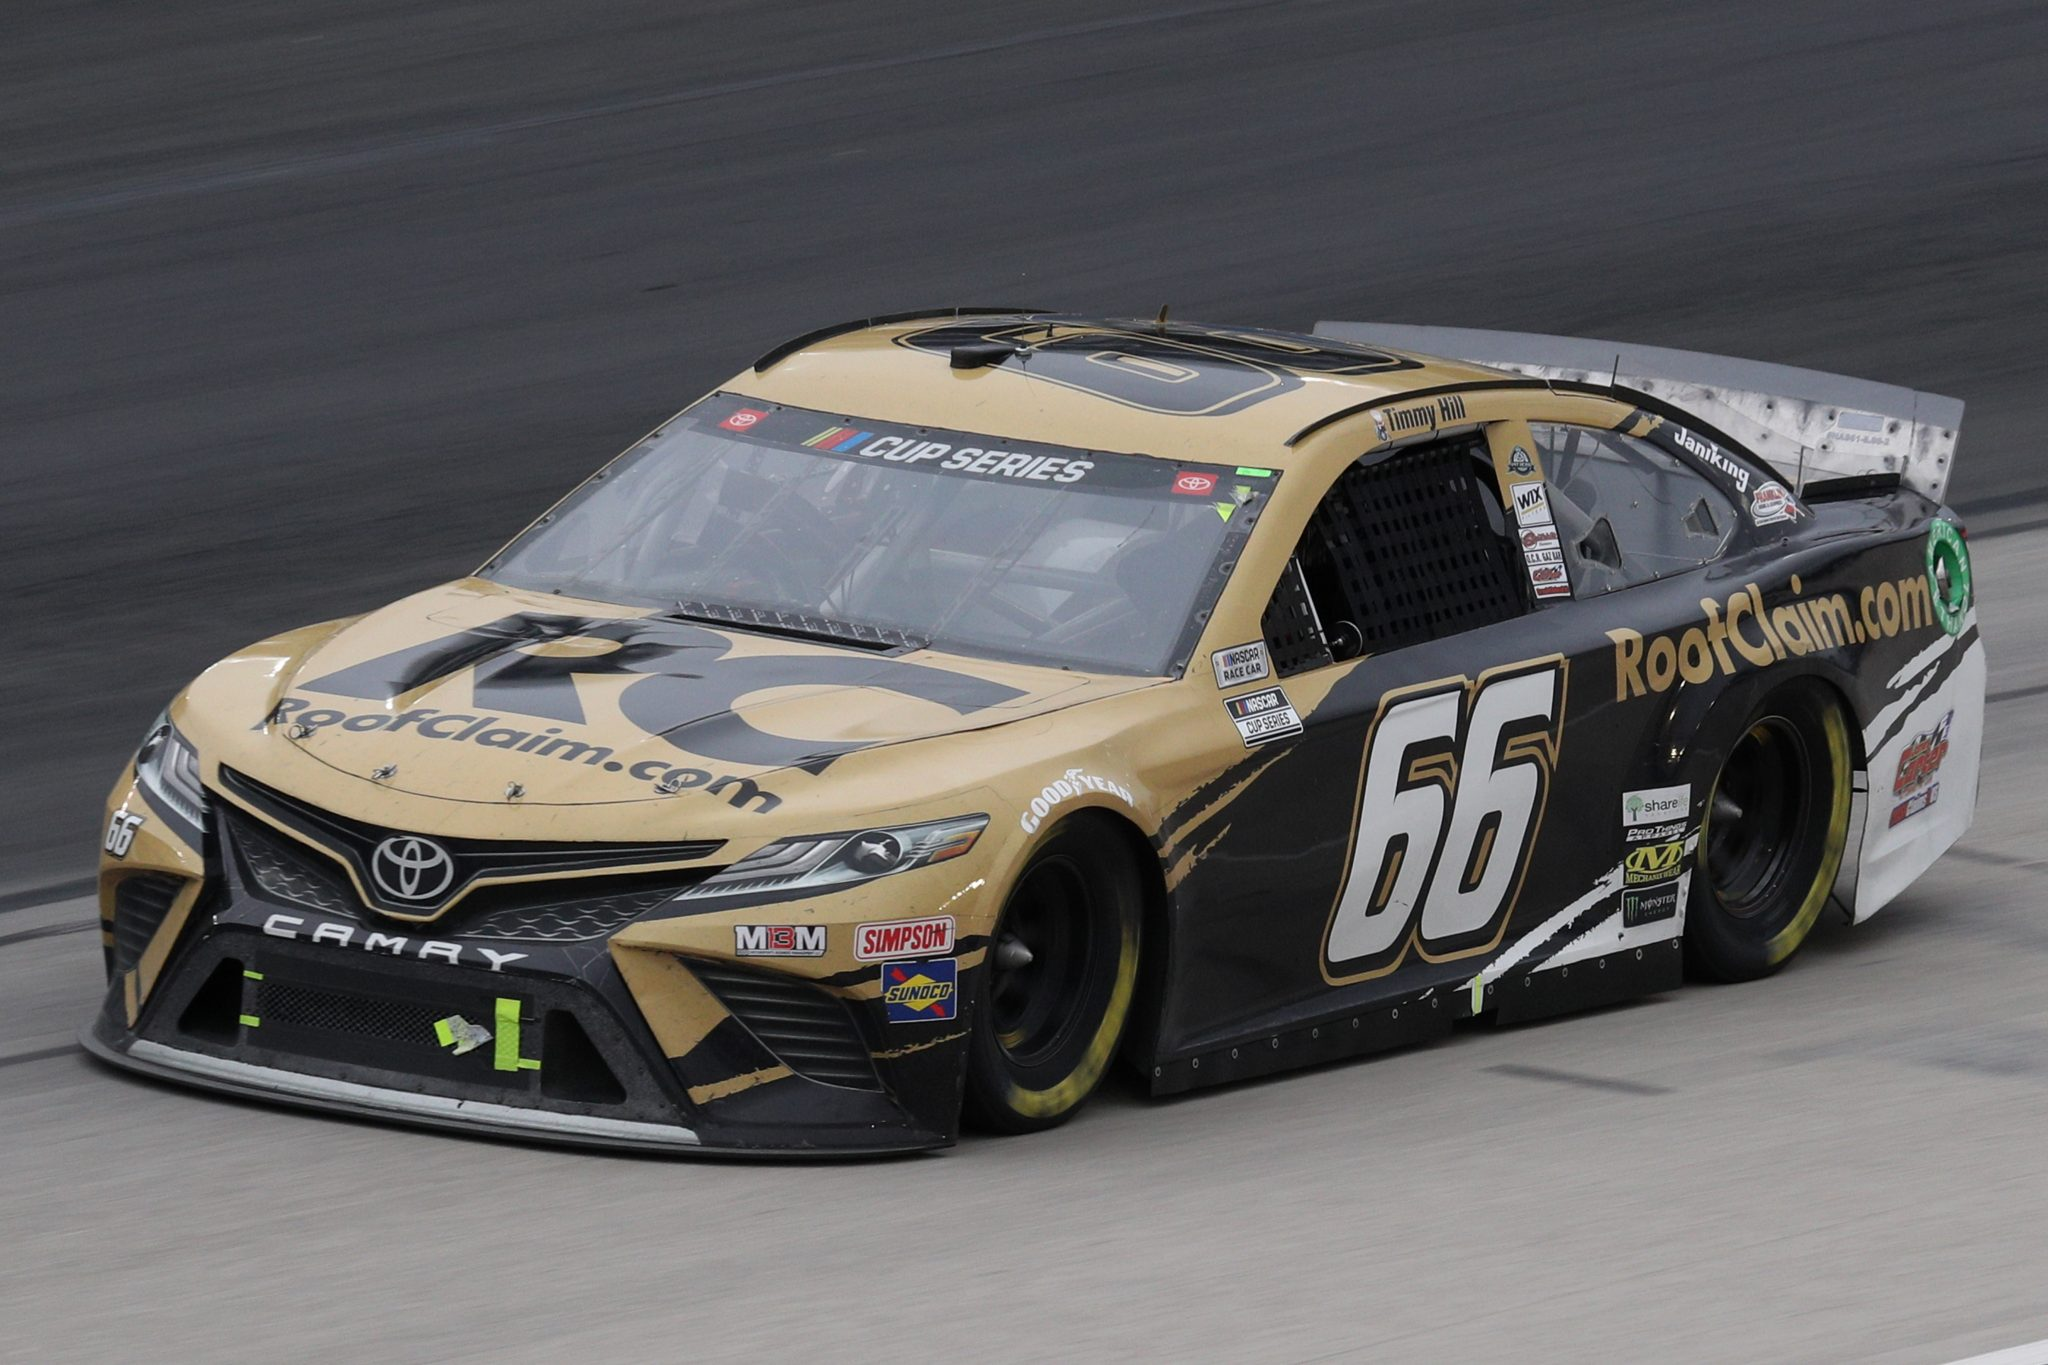 FORT WORTH, TEXAS - OCTOBER 28: Timmy Hill, driver of the #66 RoofClaim.com Toyota, drives during the NASCAR Cup Series Autotrader EchoPark Automotive 500 at Texas Motor Speedway on October 28, 2020 in Fort Worth, Texas. (Photo by Chris Graythen/Getty Images) | Getty Images